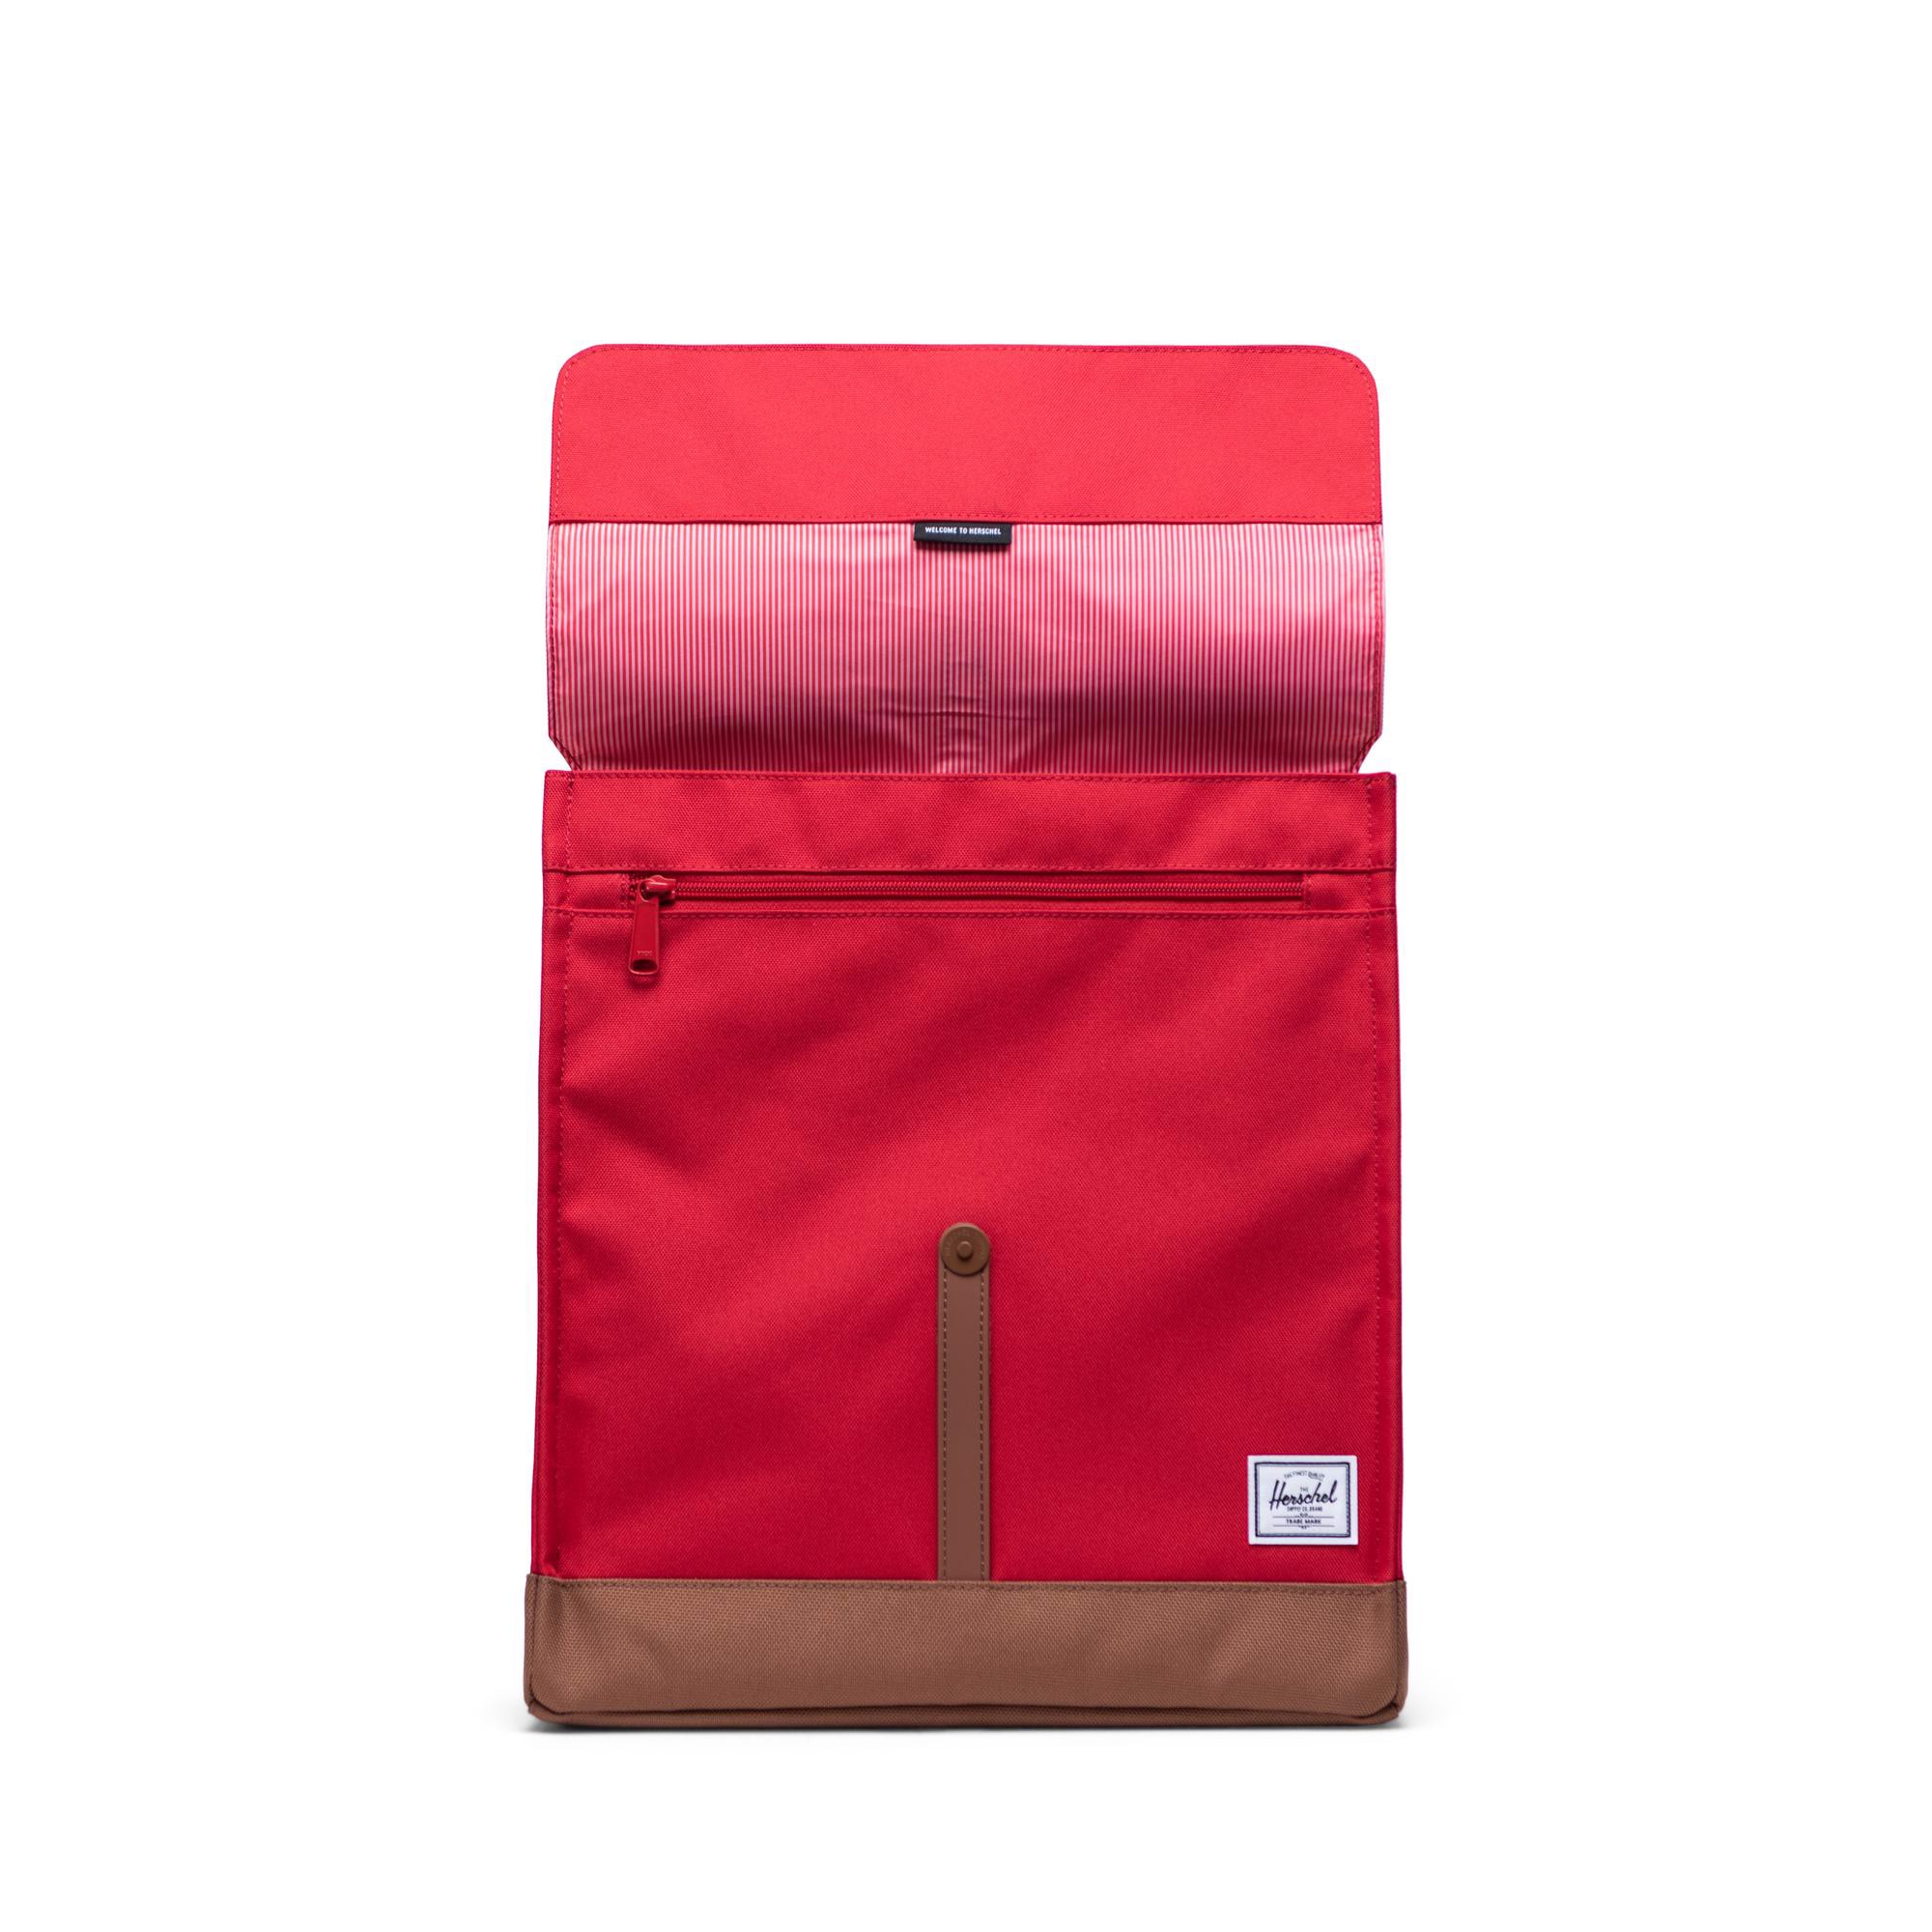 Hersche City Backpack | Mid-Volume - Red/Saddle Brown